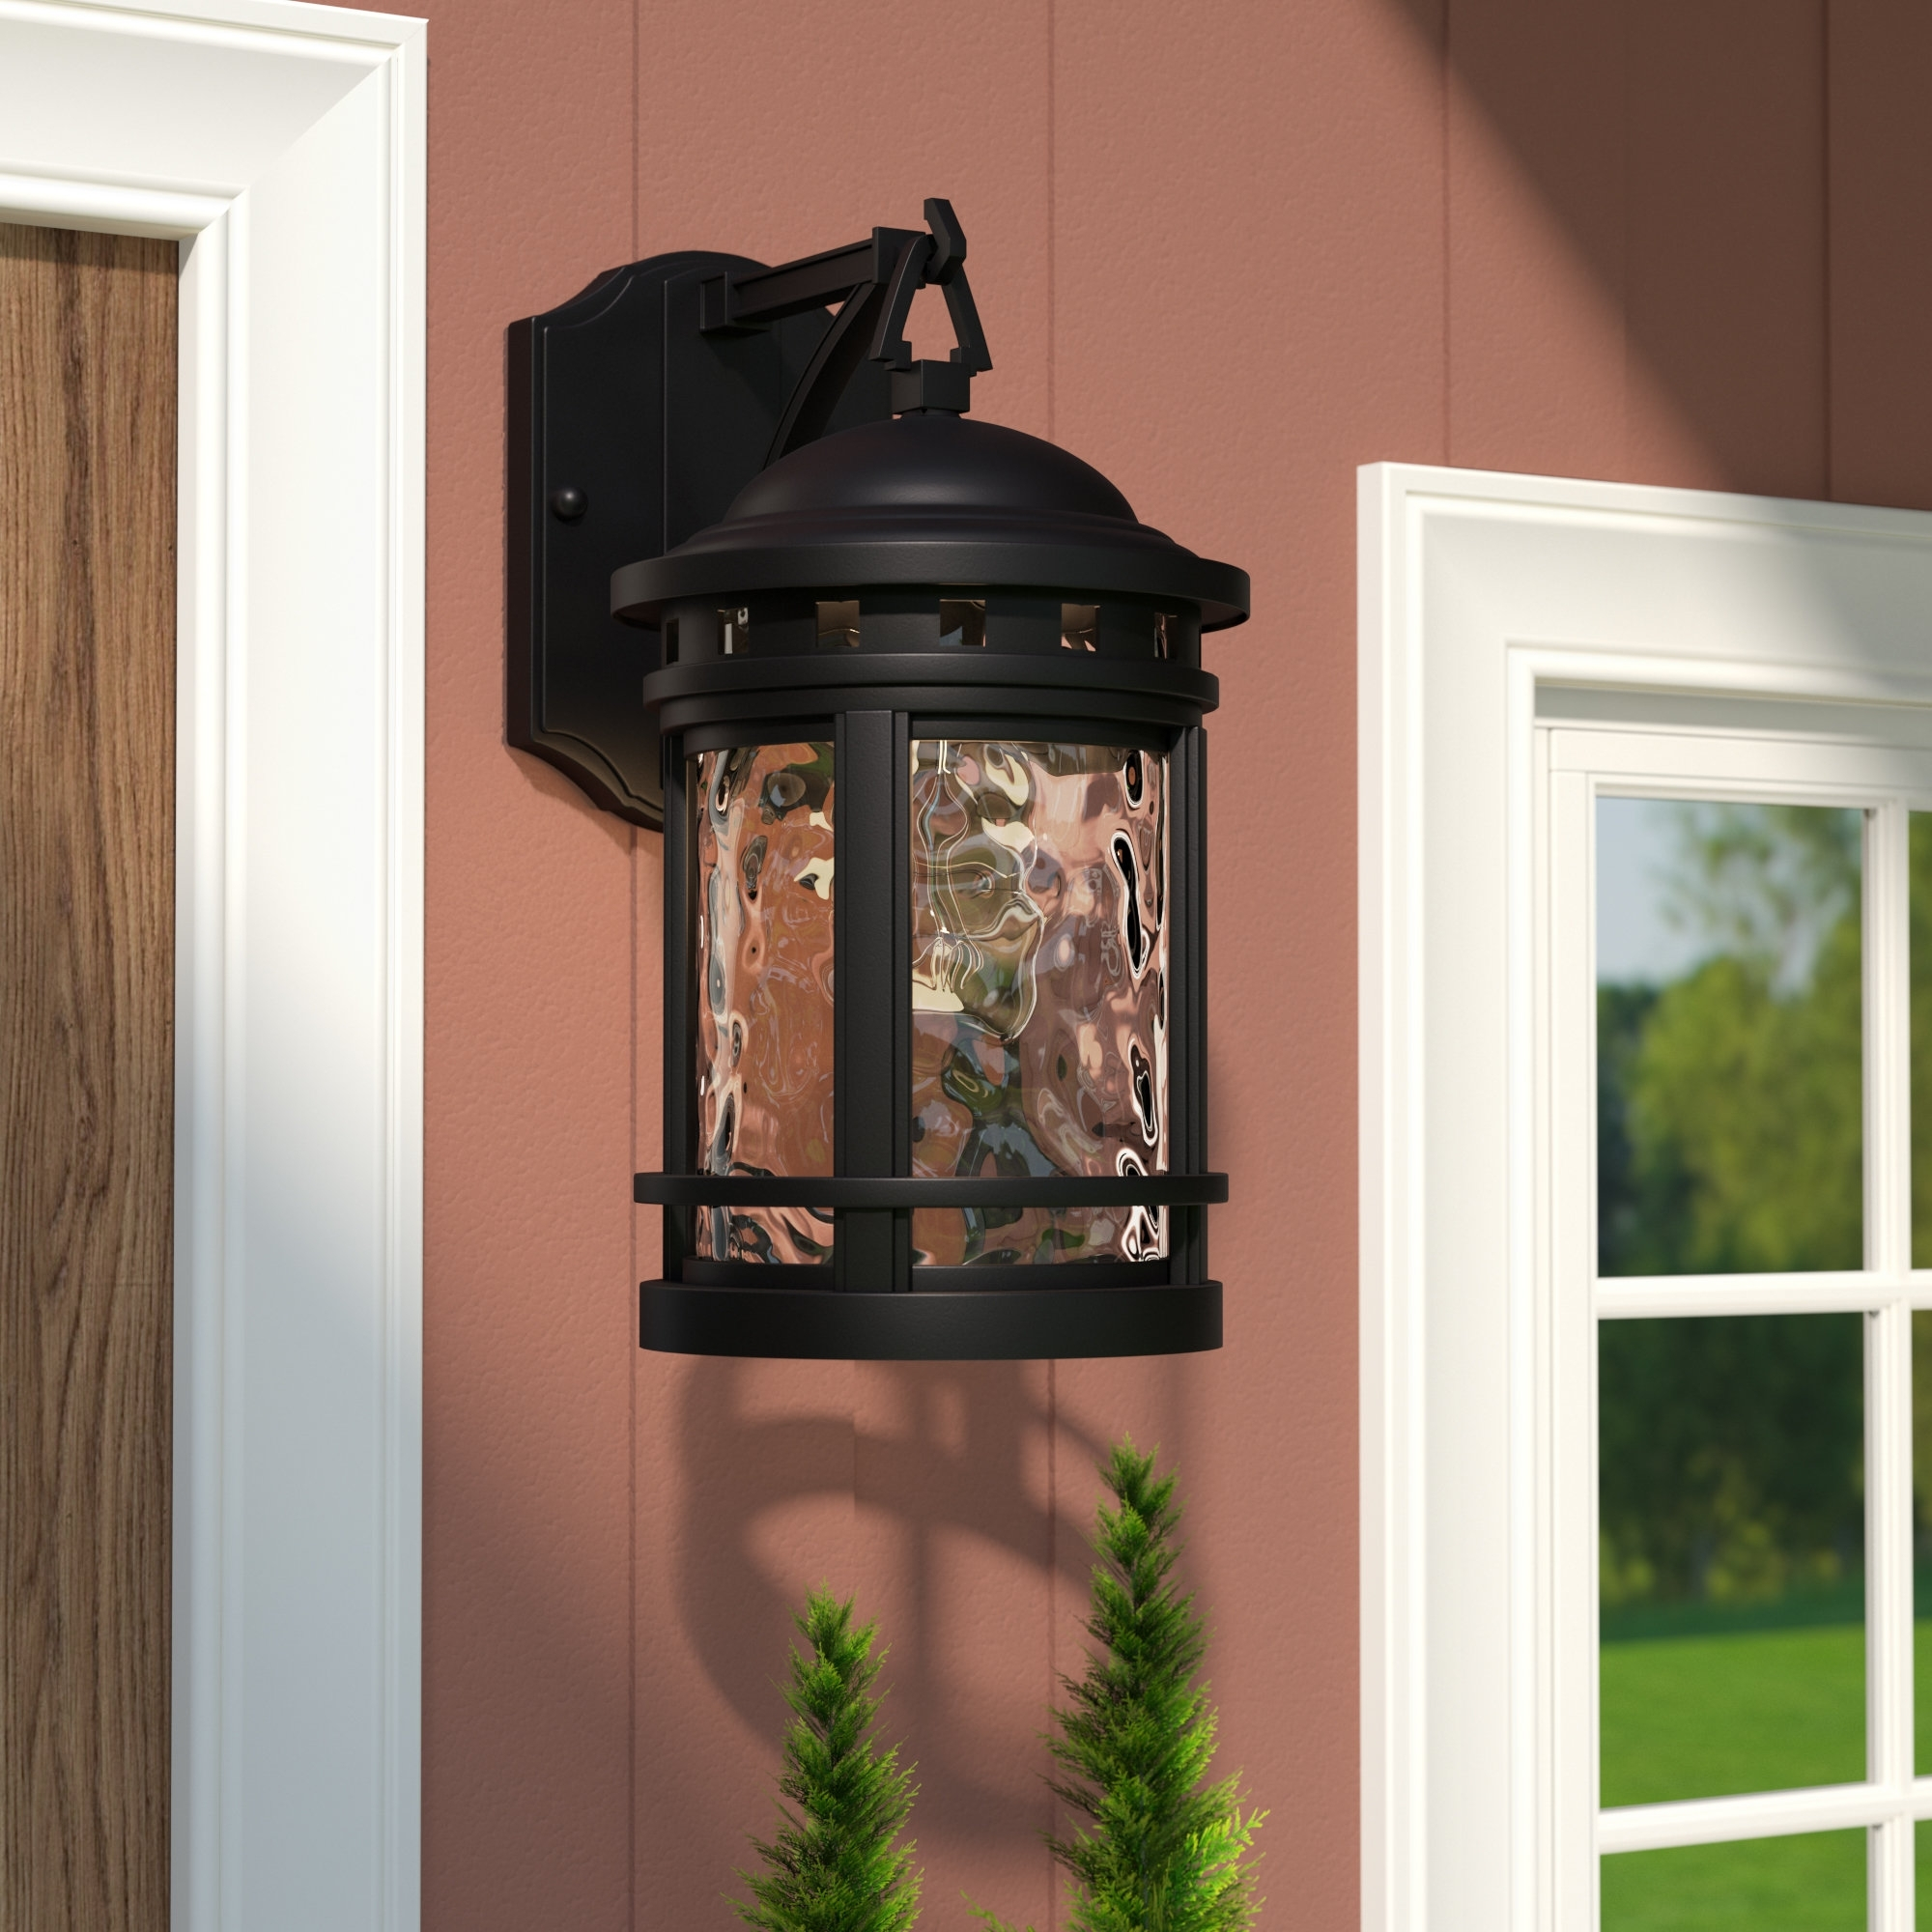 Loon Peak Ashberry 1-Light Outdoor Wall Lantern & Reviews | Wayfair with regard to Outdoor Vinyl Lanterns (Image 10 of 20)